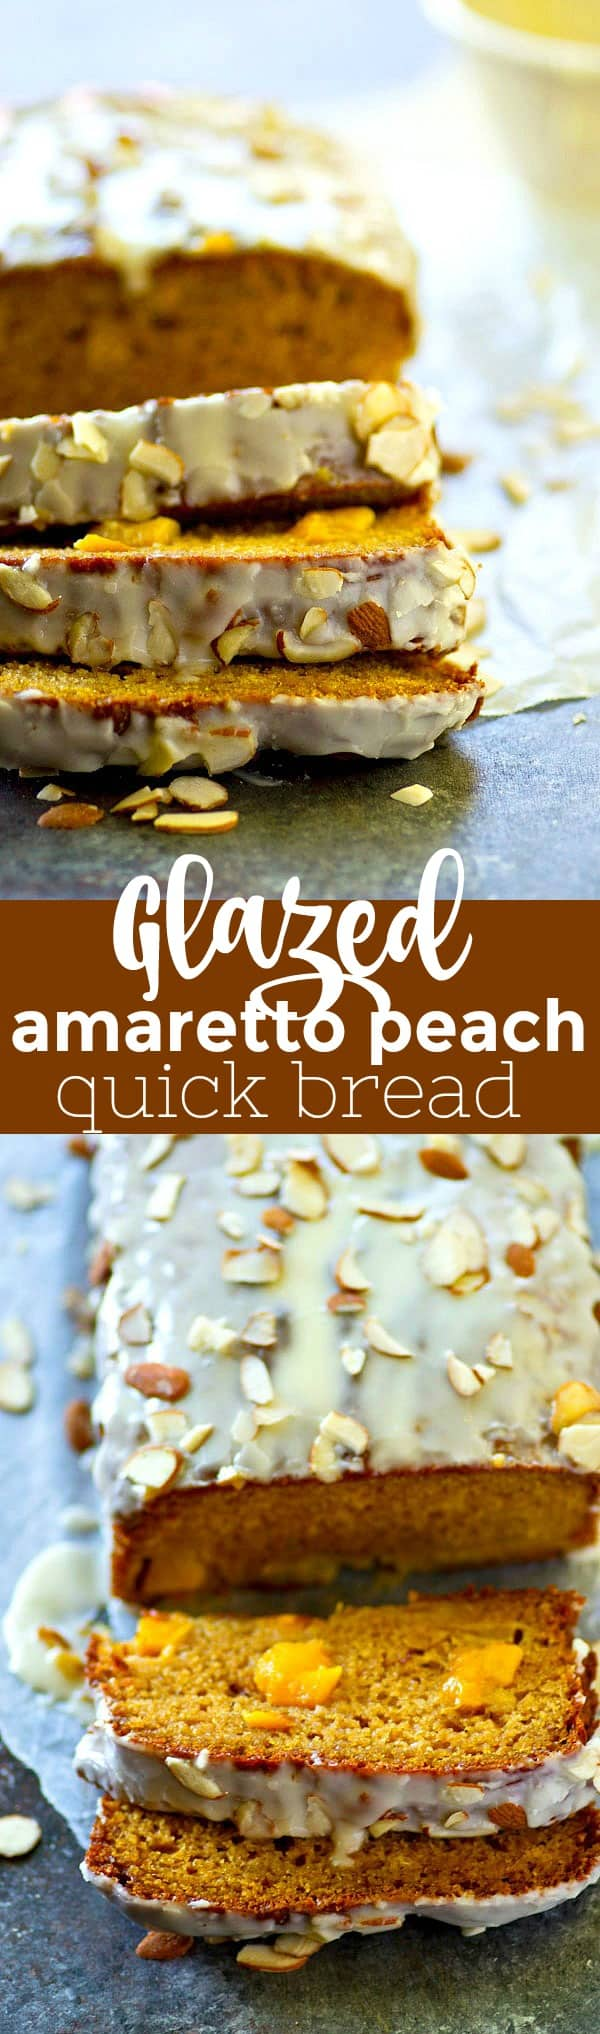 Fresh peaches and amaretto are a match made in heaven in this SUPER-soft glazed amaretto peach quick bread! Perfect way to use up those summer peaches.